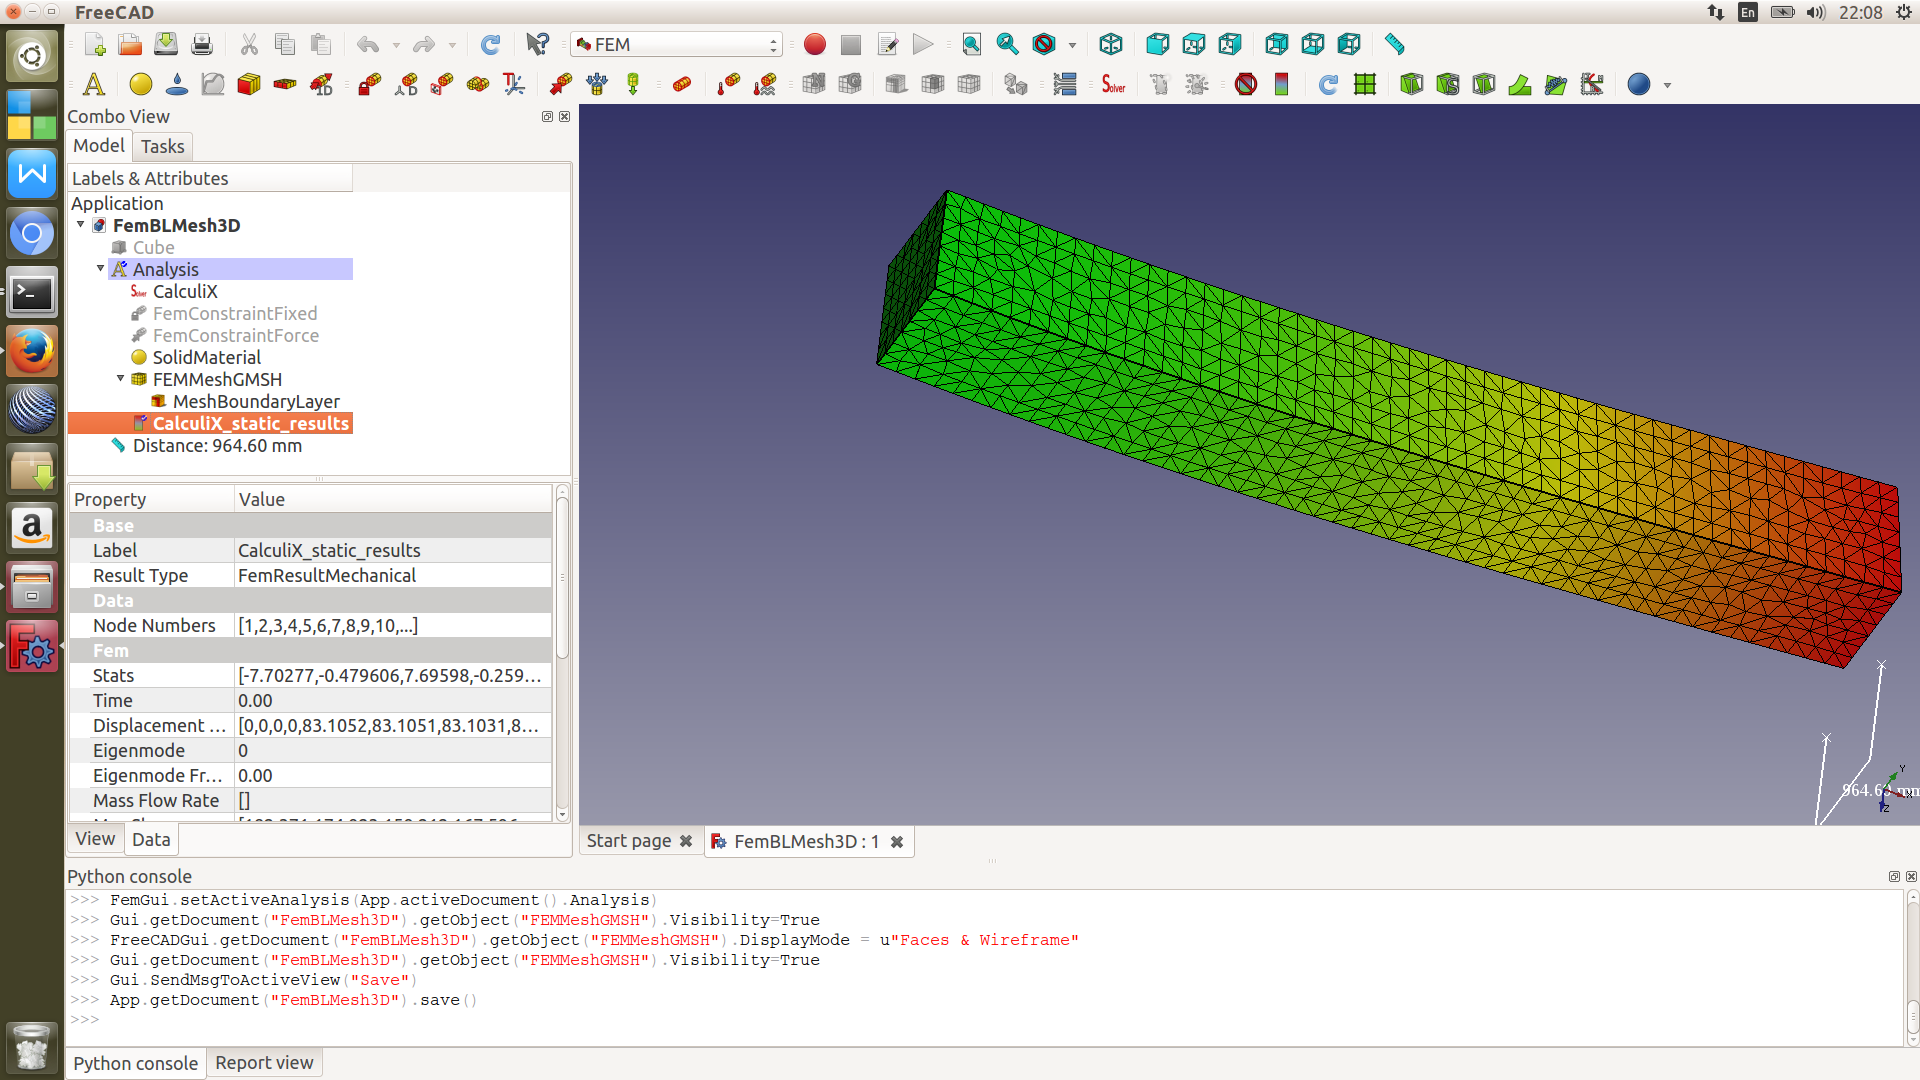 FreeCAD_3D_boundarylayer_result.png